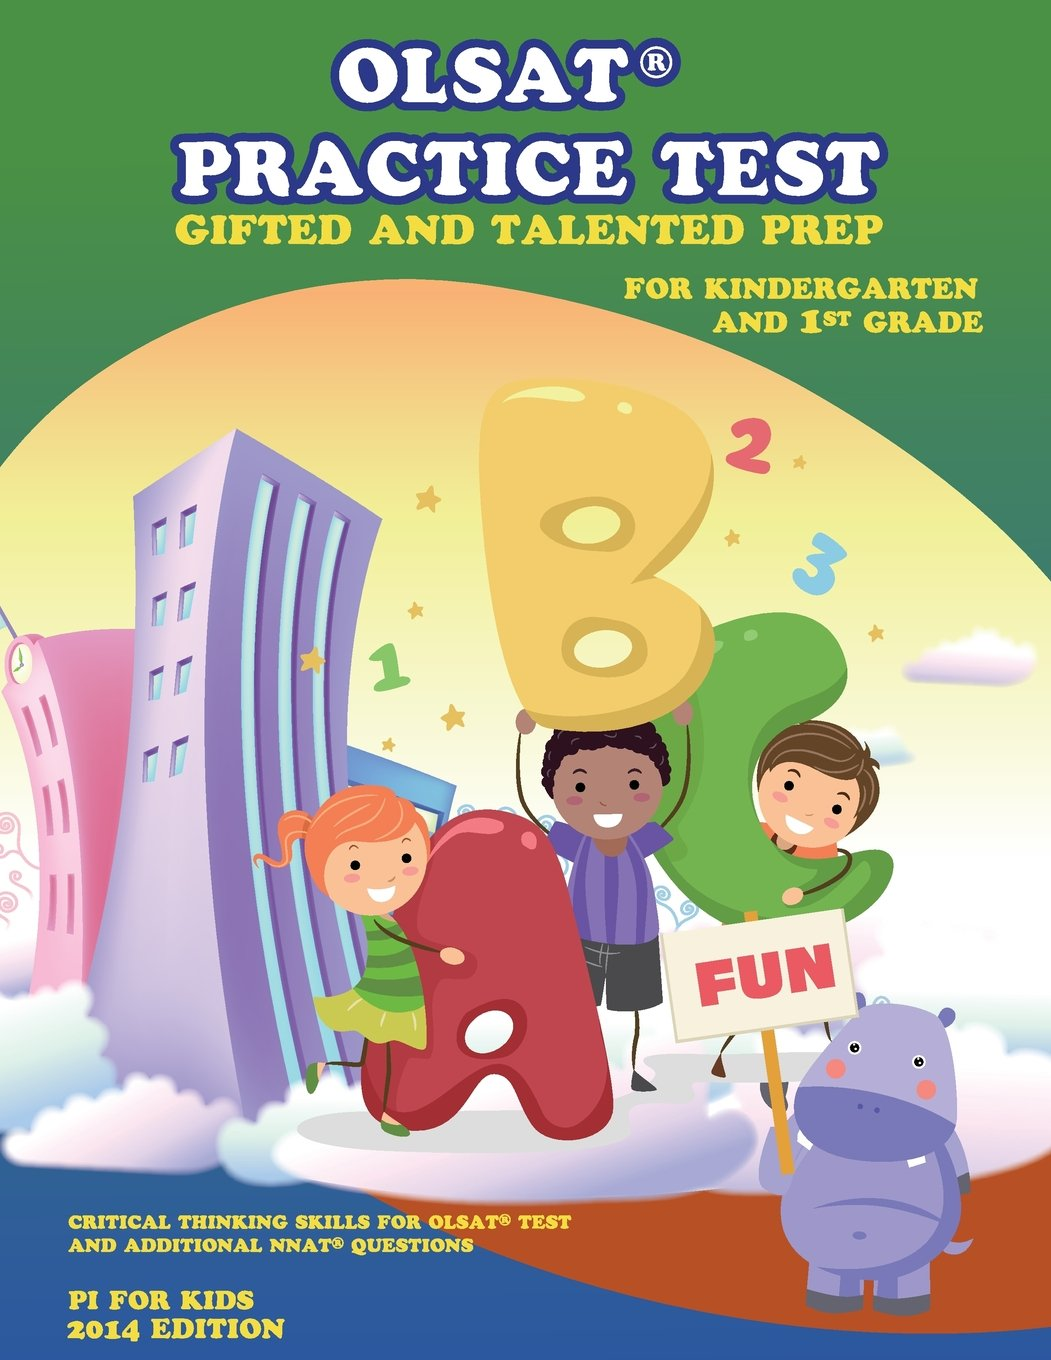 Amazoncom Gifted And Talented Test Prep Olsat Practice Test